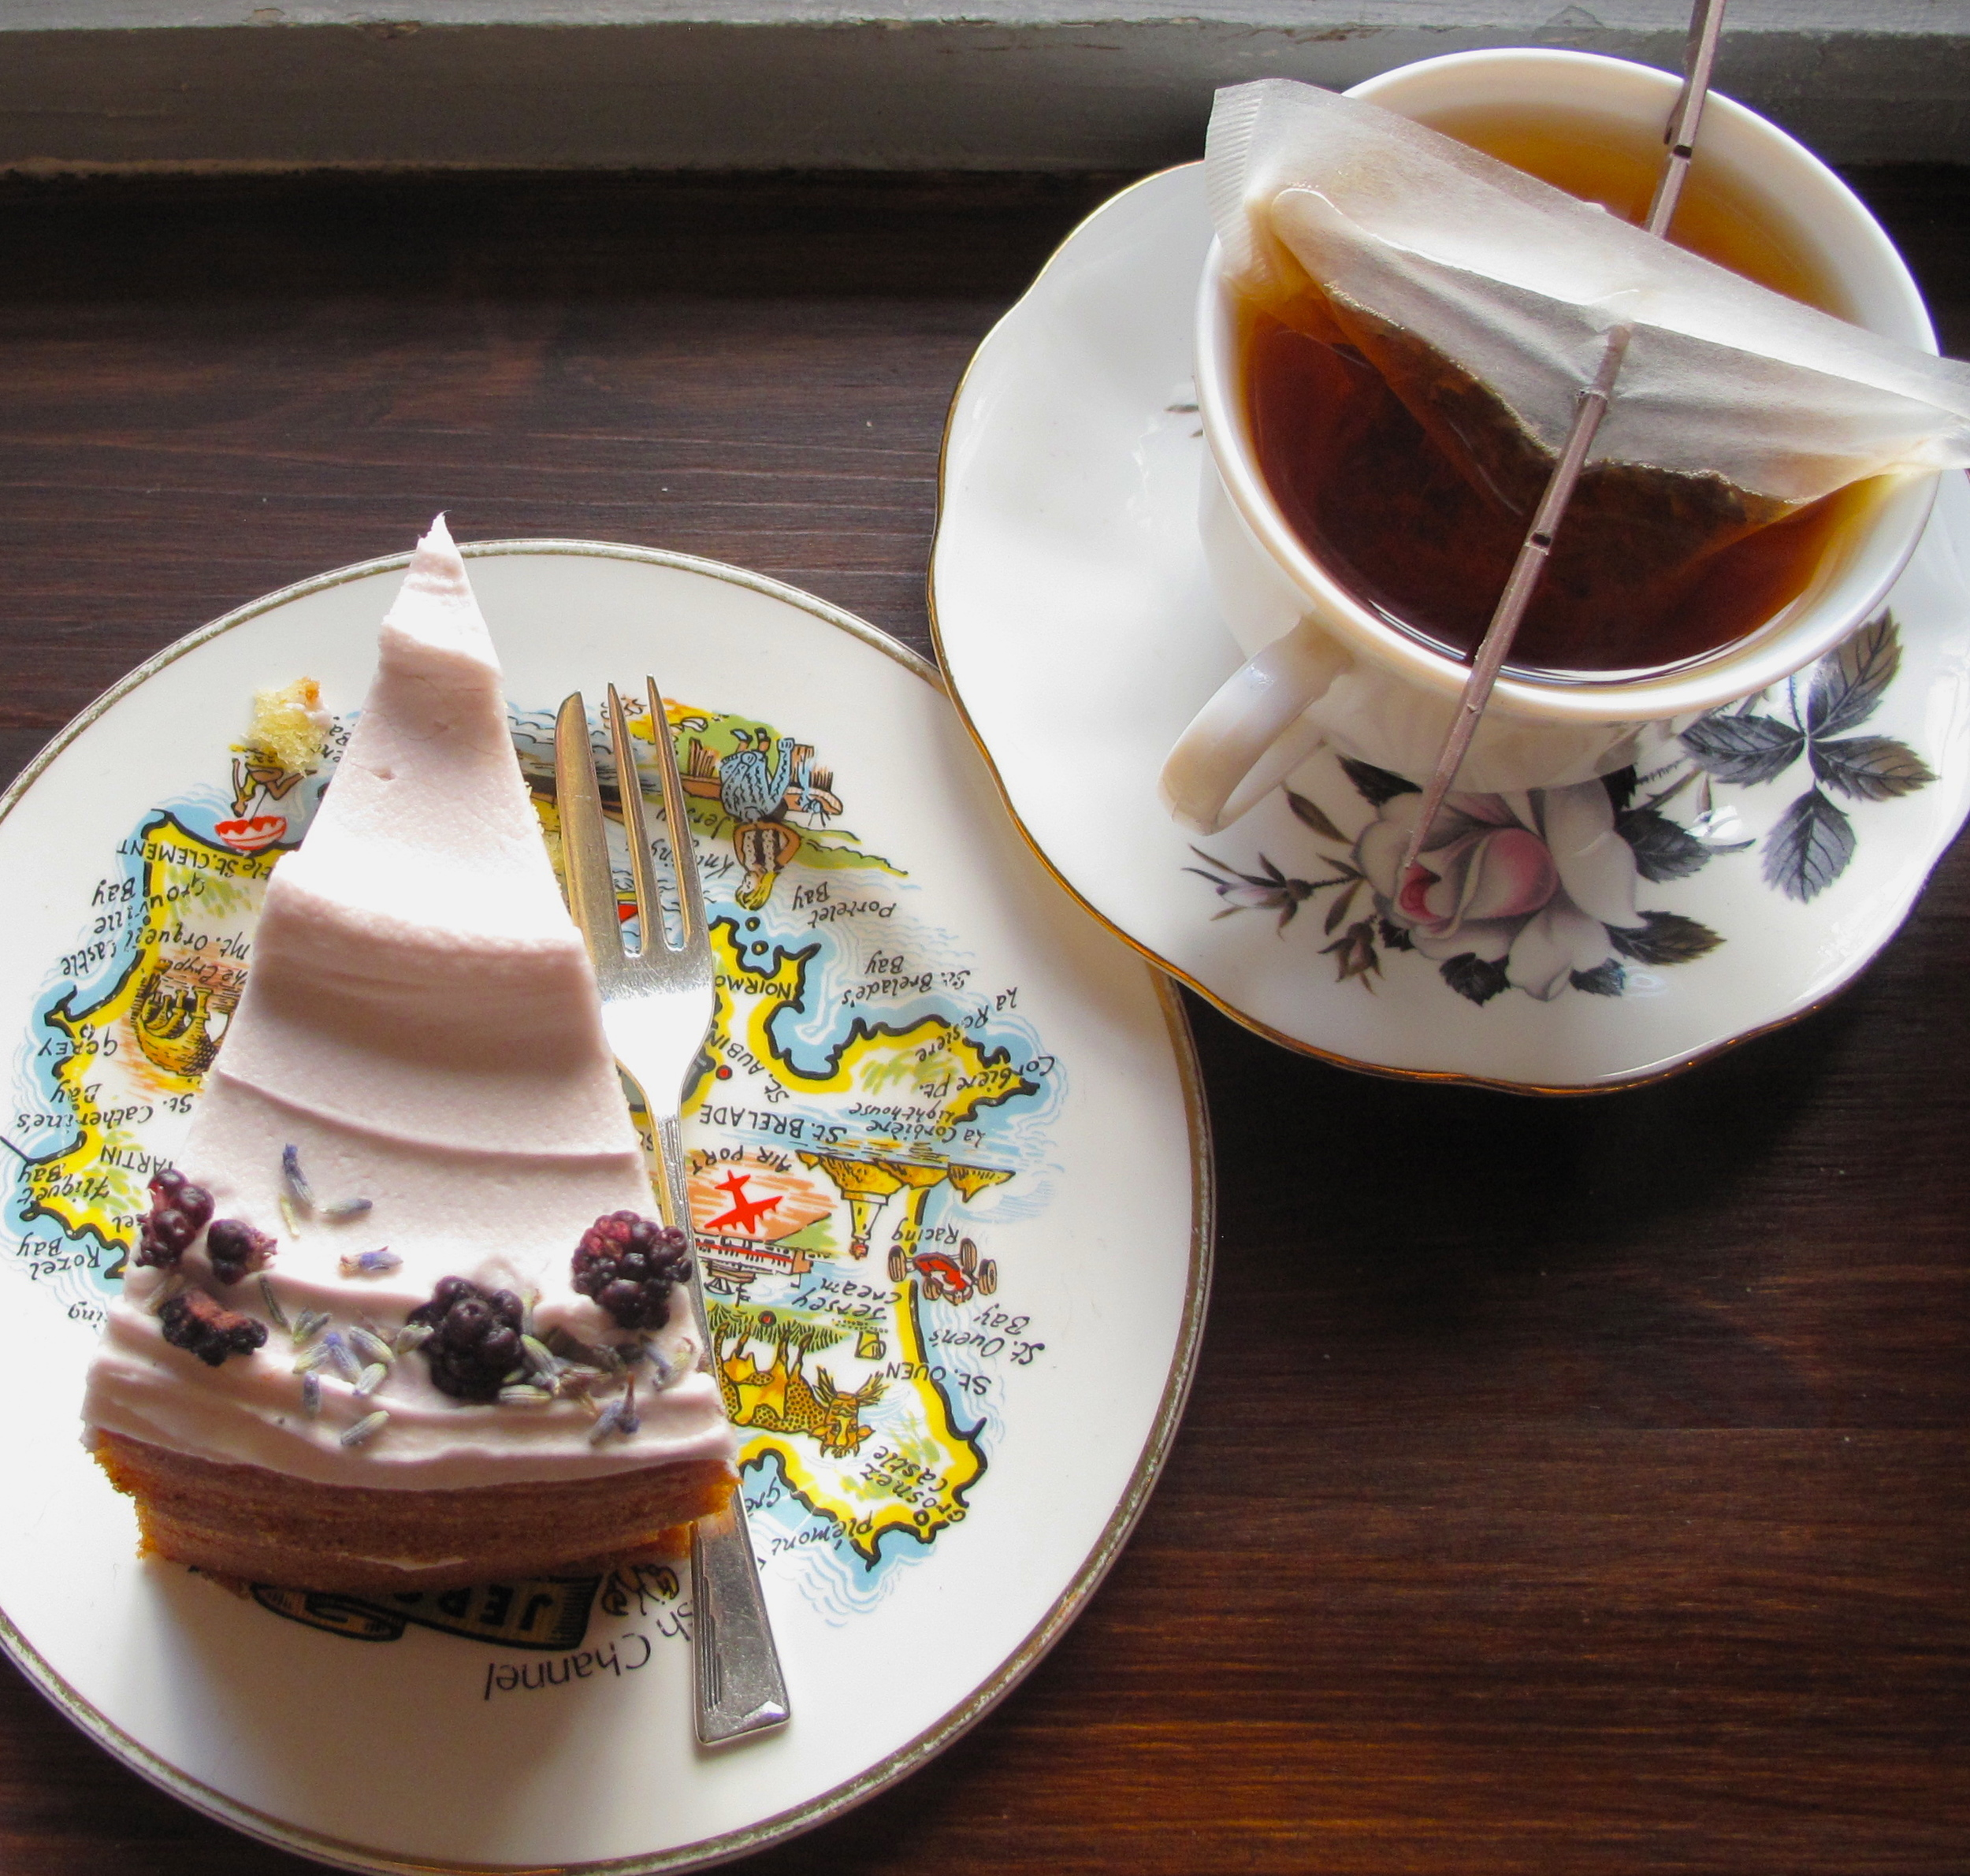 Love Crumbs cafe - flower cake and a cup of fragrant tea.